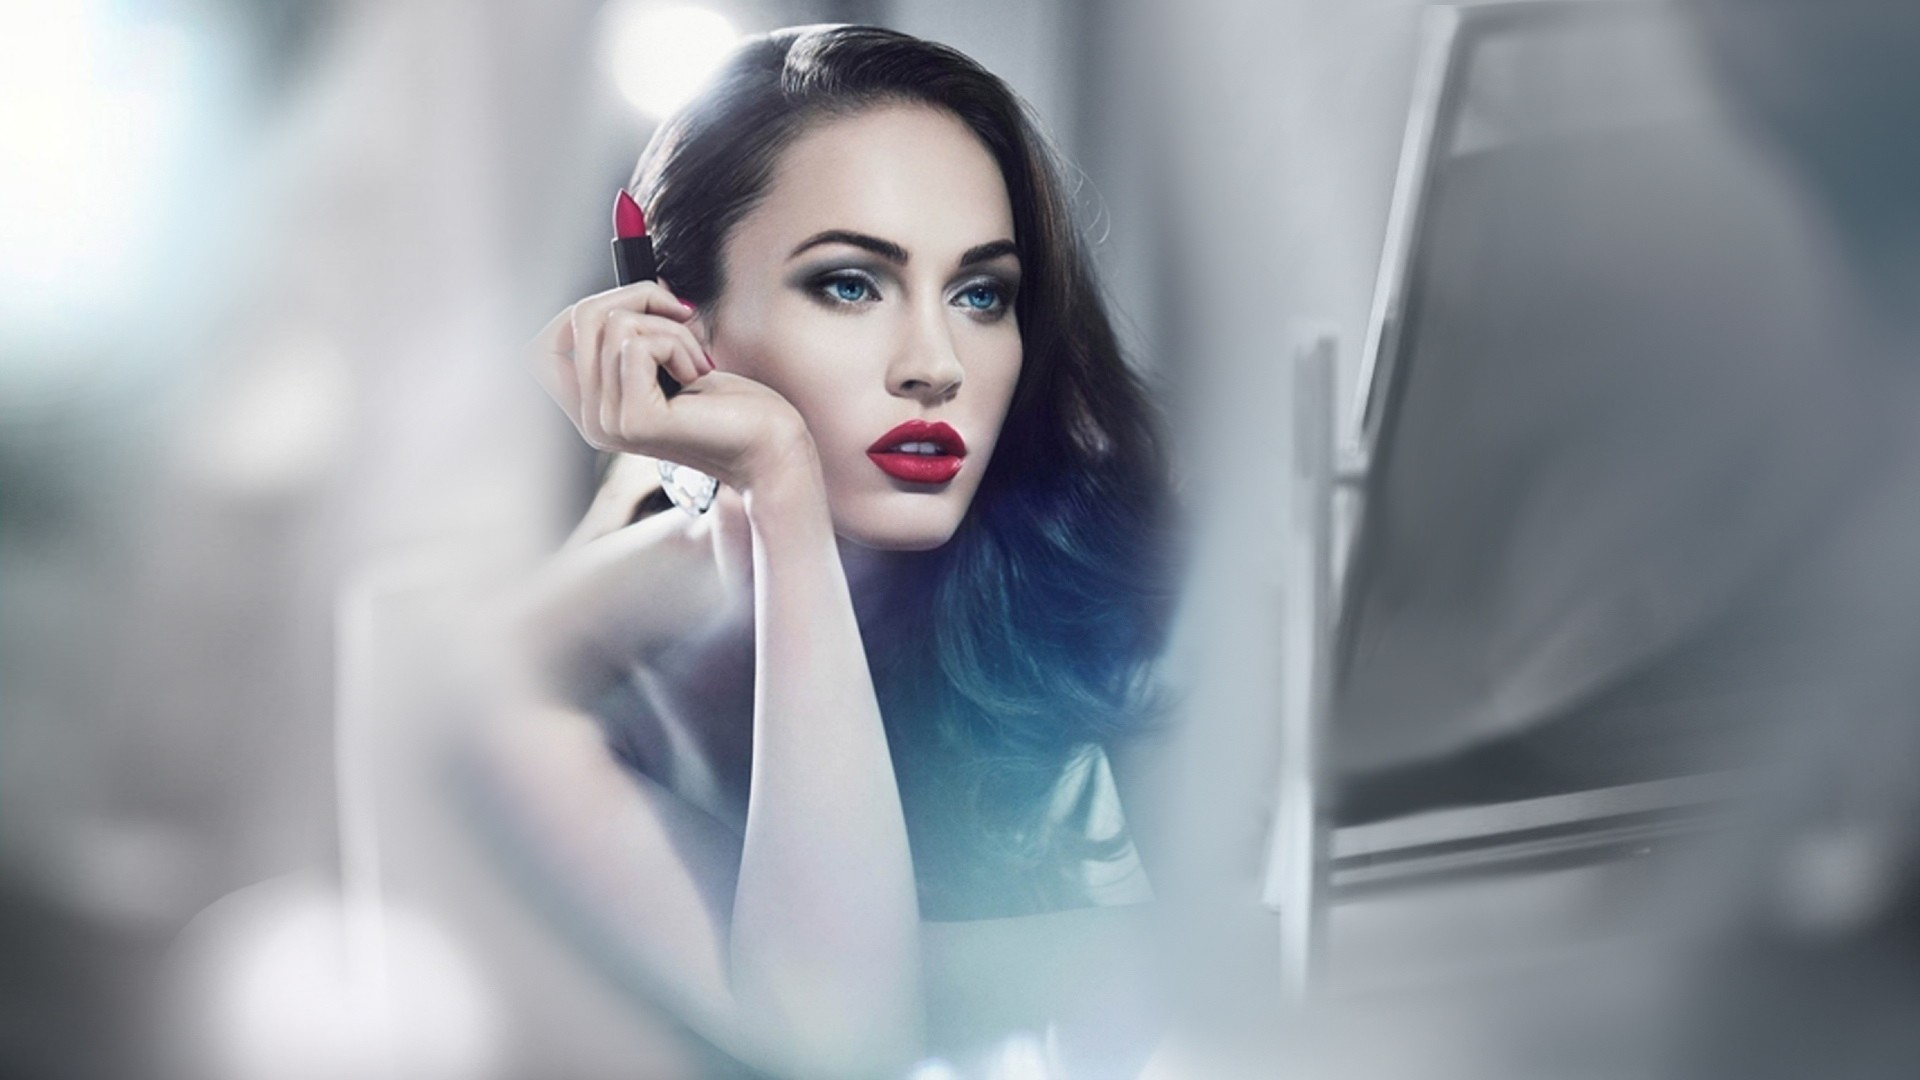 megan fox makeup hd wallpaper 64219